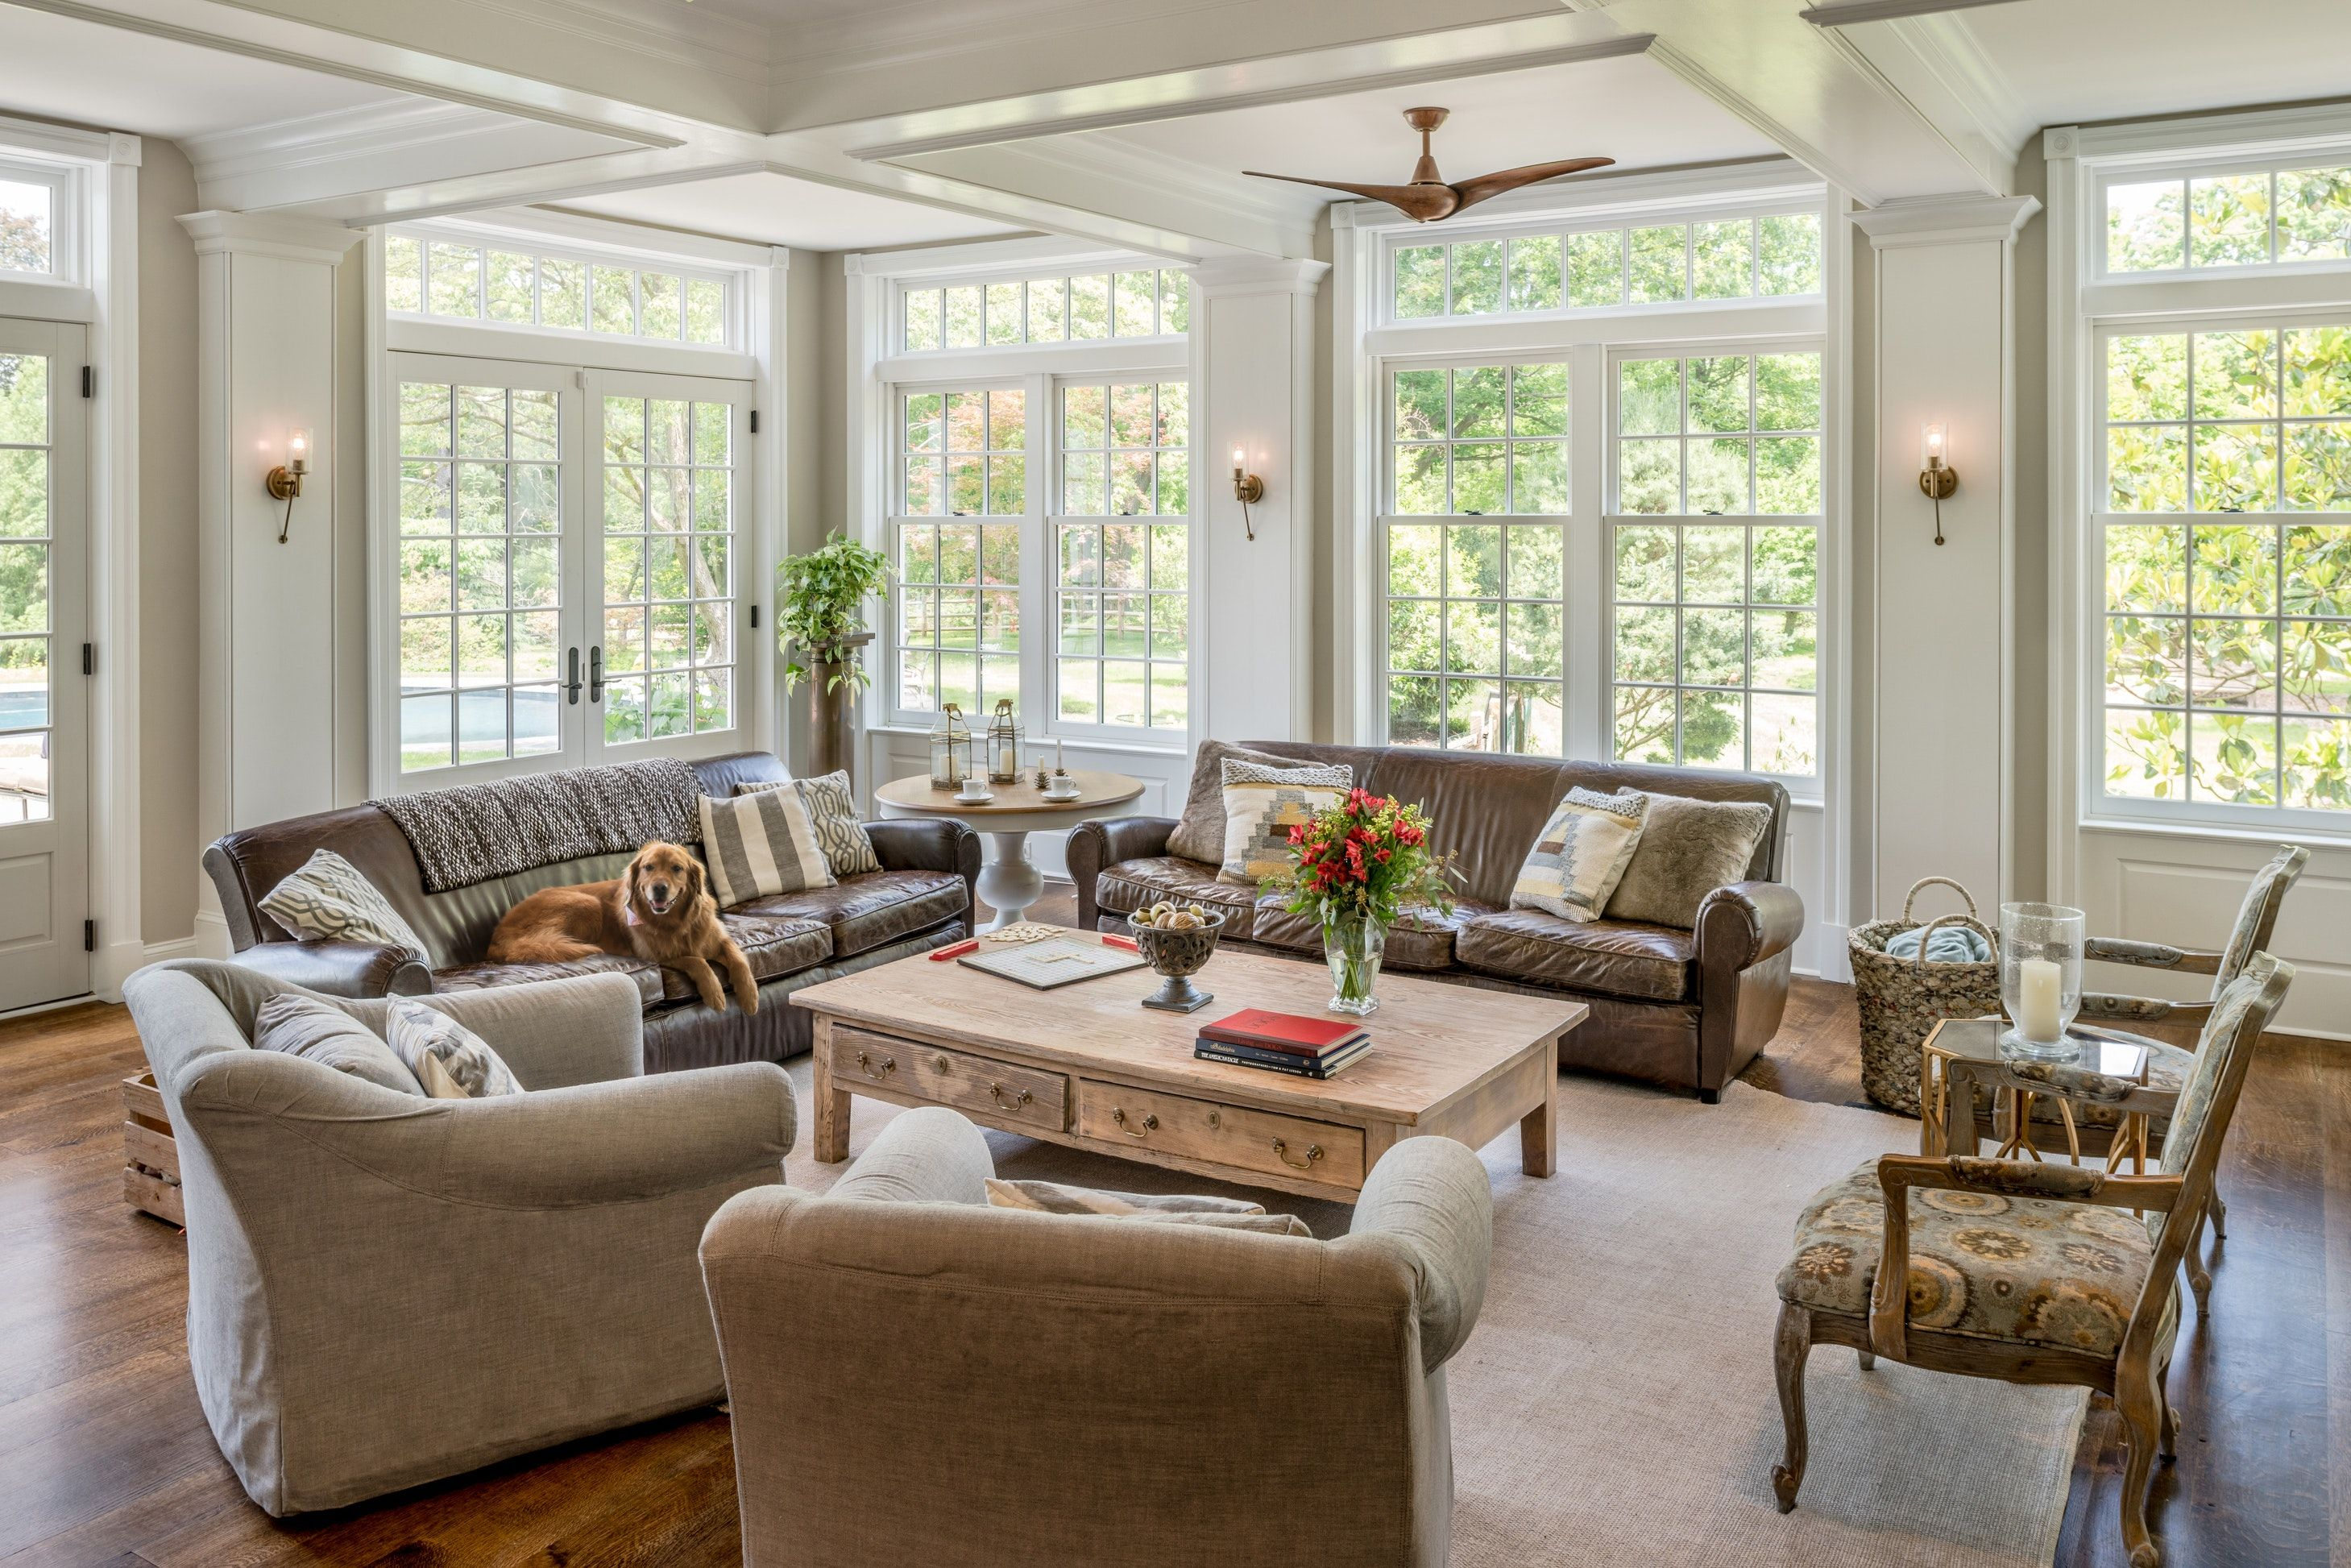 Bright White Traditional Family Room Addition With Lots Of Windows And View Family Room Addition Room Additions Family Living Rooms Living rooms with lots of windows